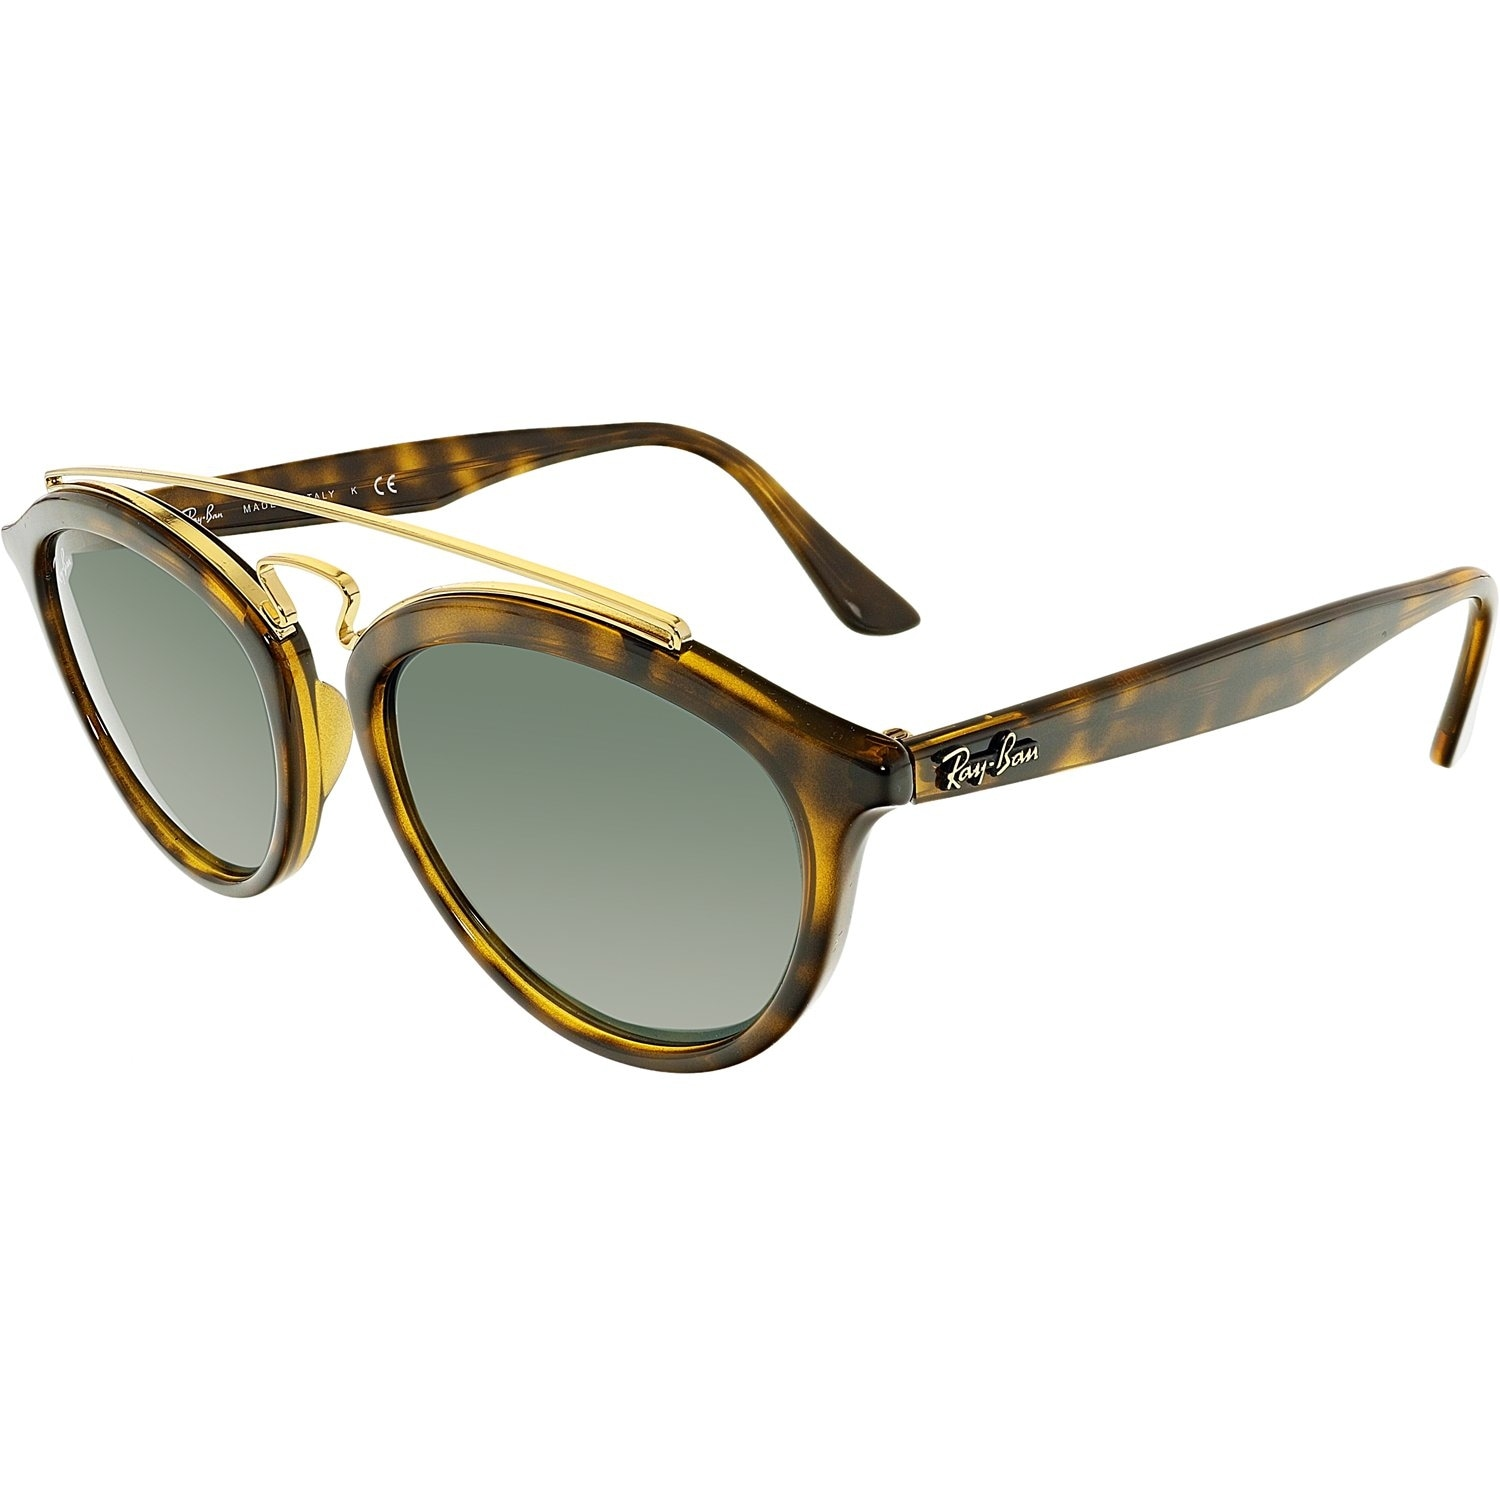 72c0bd5041 Ray-Ban Gatsby II RB4257-710 71-53 Brown Round Sunglasses - Free Shipping  Today - Overstock - 24957668